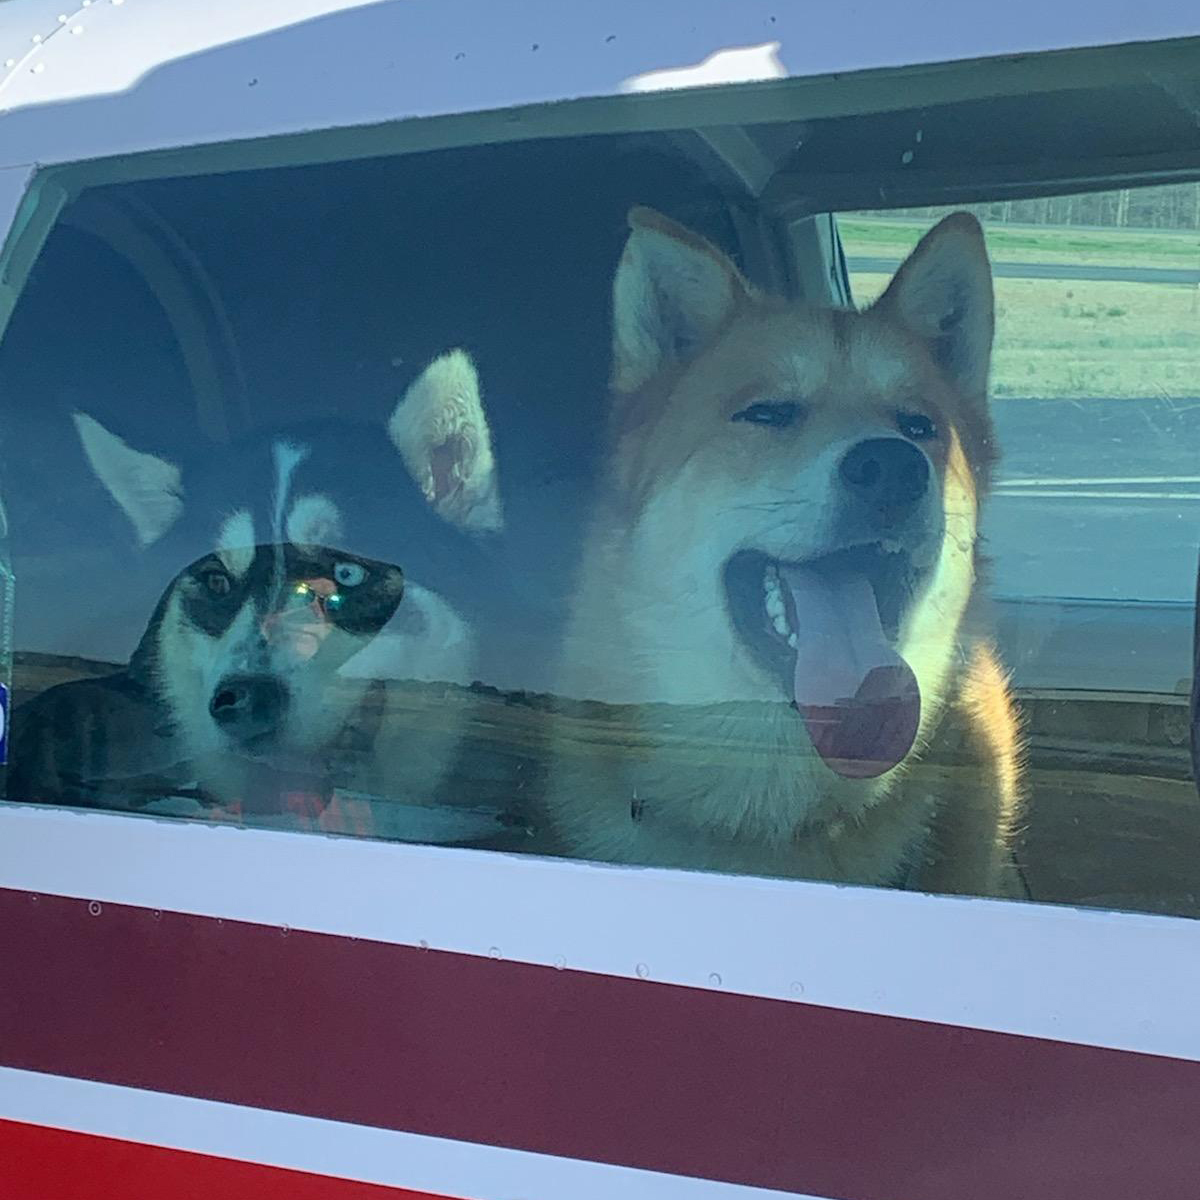 dogs looking through and licking airplane window